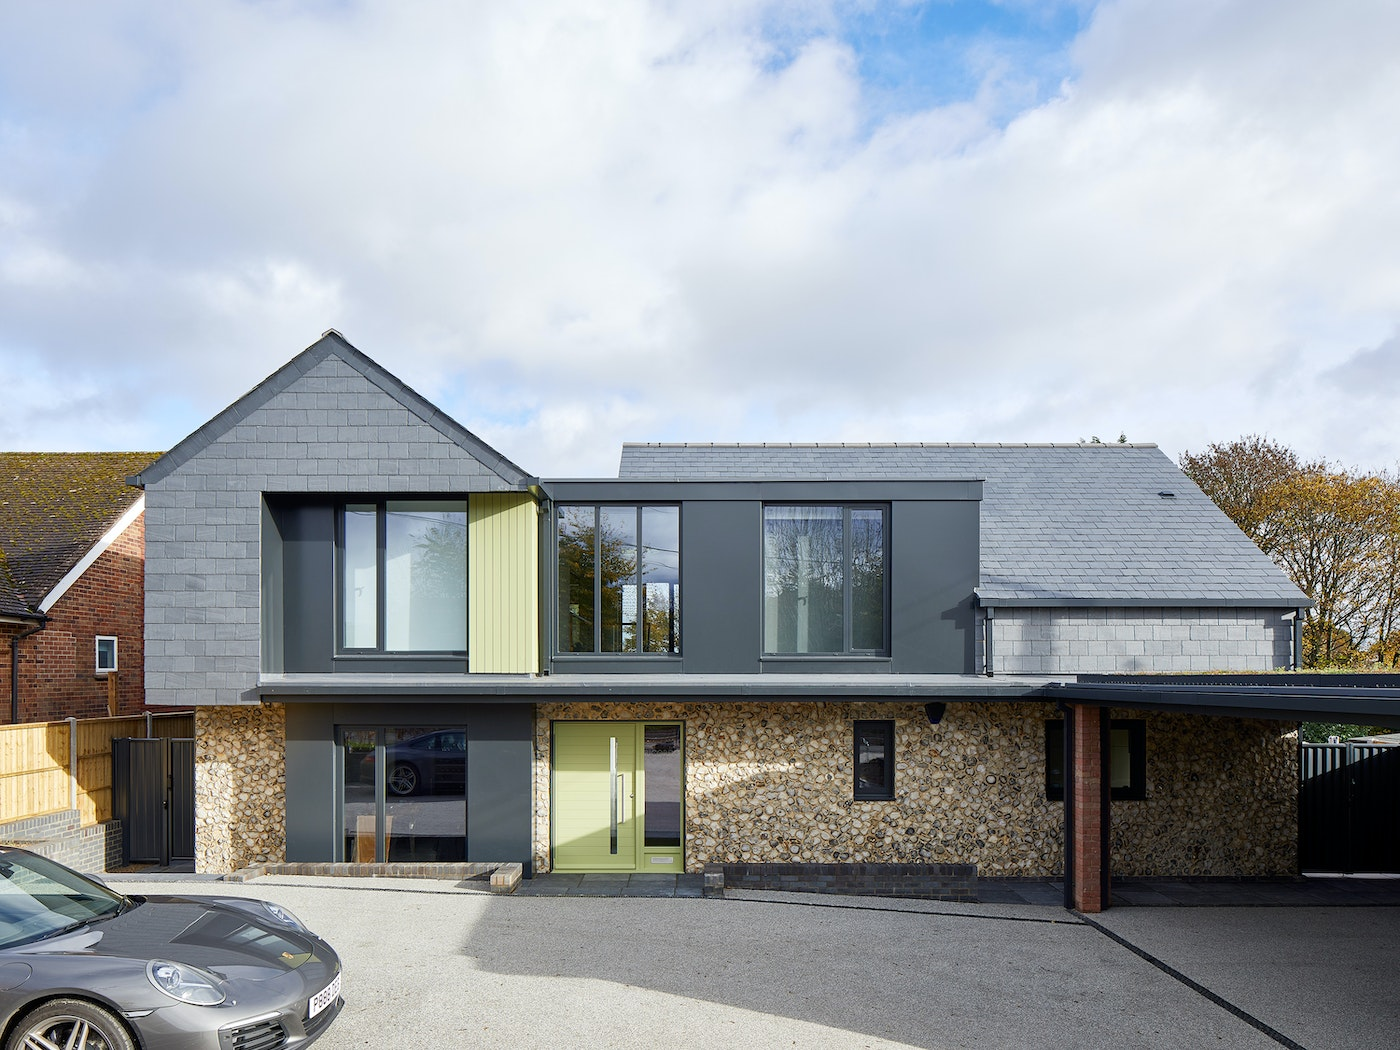 Using Green to accent a mostly grey frontage